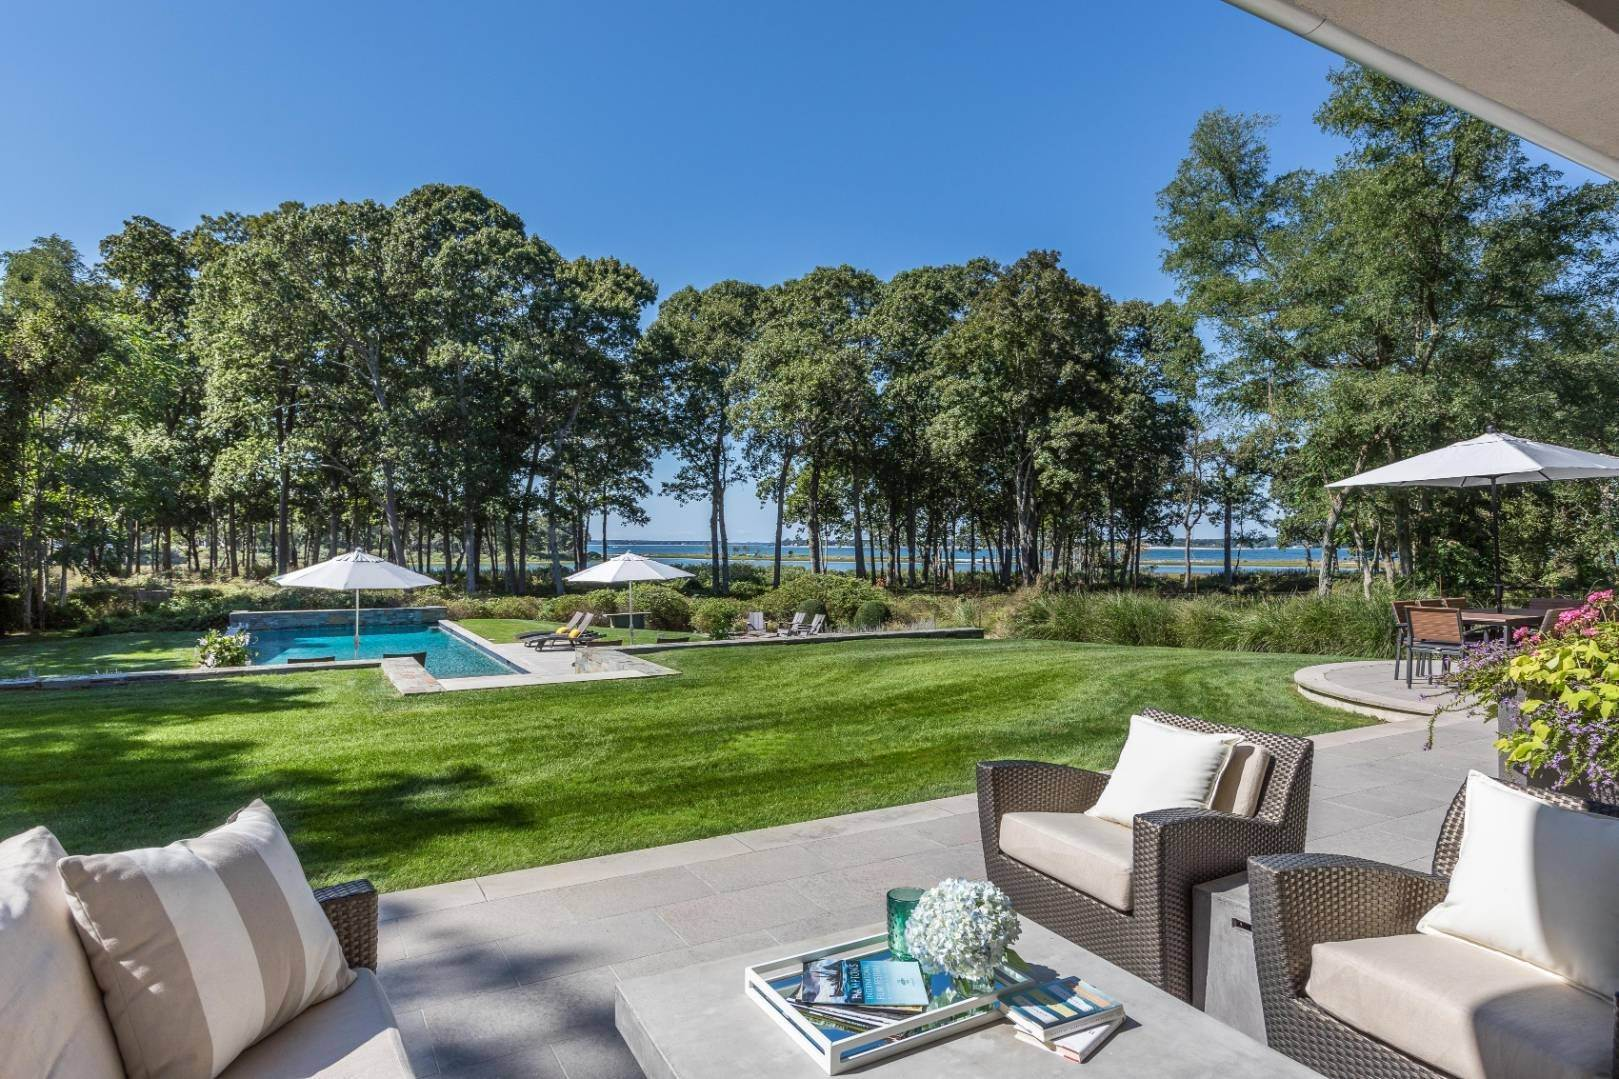 Single Family Home for Sale at Modern Waterfront Sanctuary In North Haven Point 27 Ezekills Hollow, Sag Harbor, NY 11963